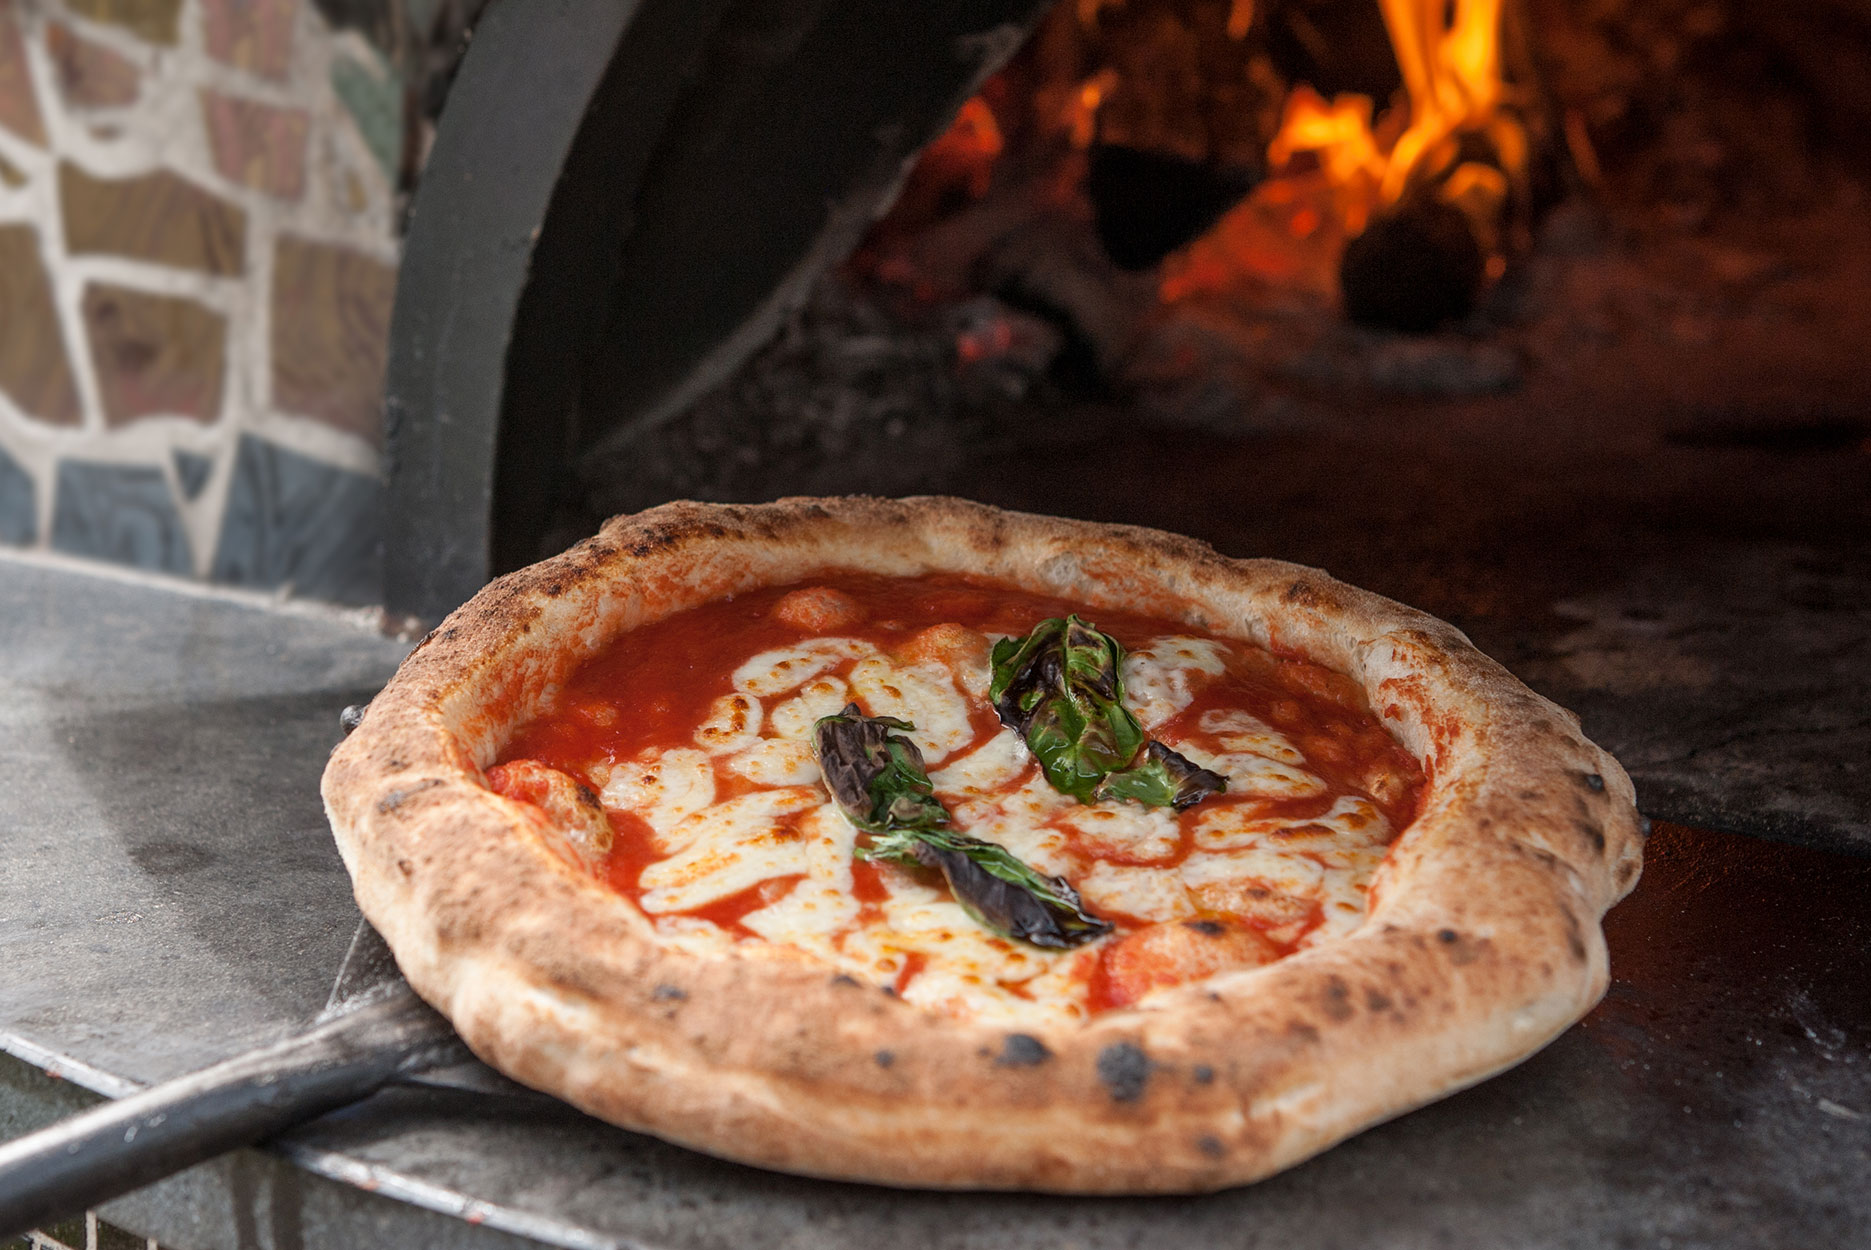 Italian traditional pizza Margherita baked in the wood-fired oven